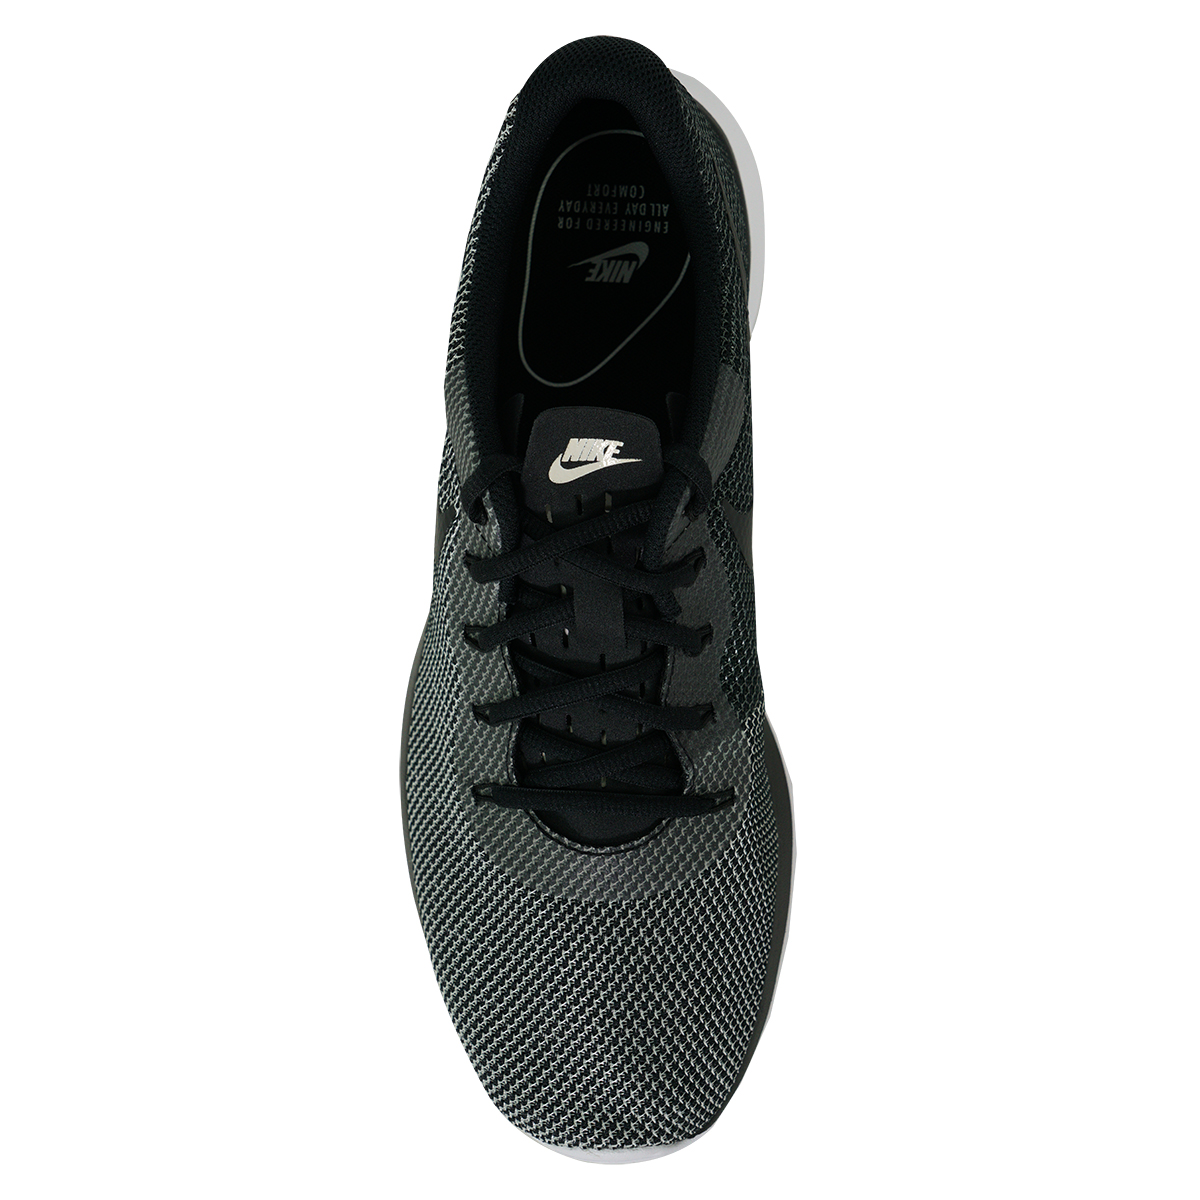 Nike-Men-039-s-Tanjun-Racer-Running-Shoes thumbnail 16